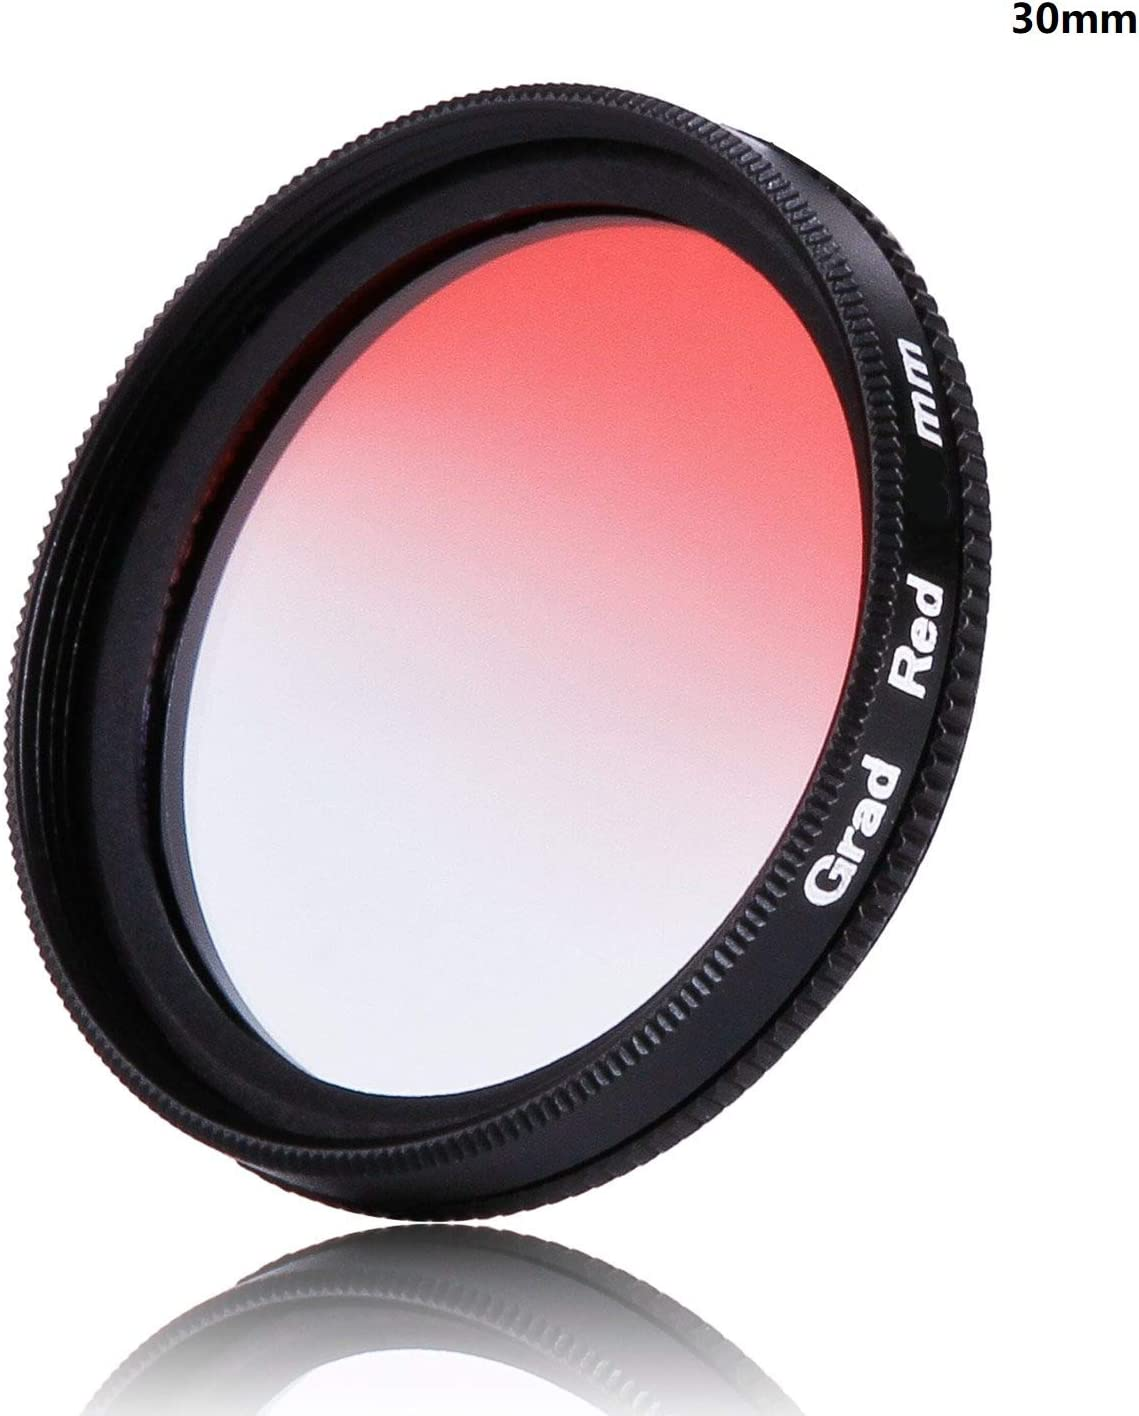 1pcs 30mm 37mm 40.5mm 43mm 46mm 49mm 52mm 55mm 58mm 62mm 67mm 72mm 77mm 82mm Full Yellow Color Lens Filter Protector 30mm